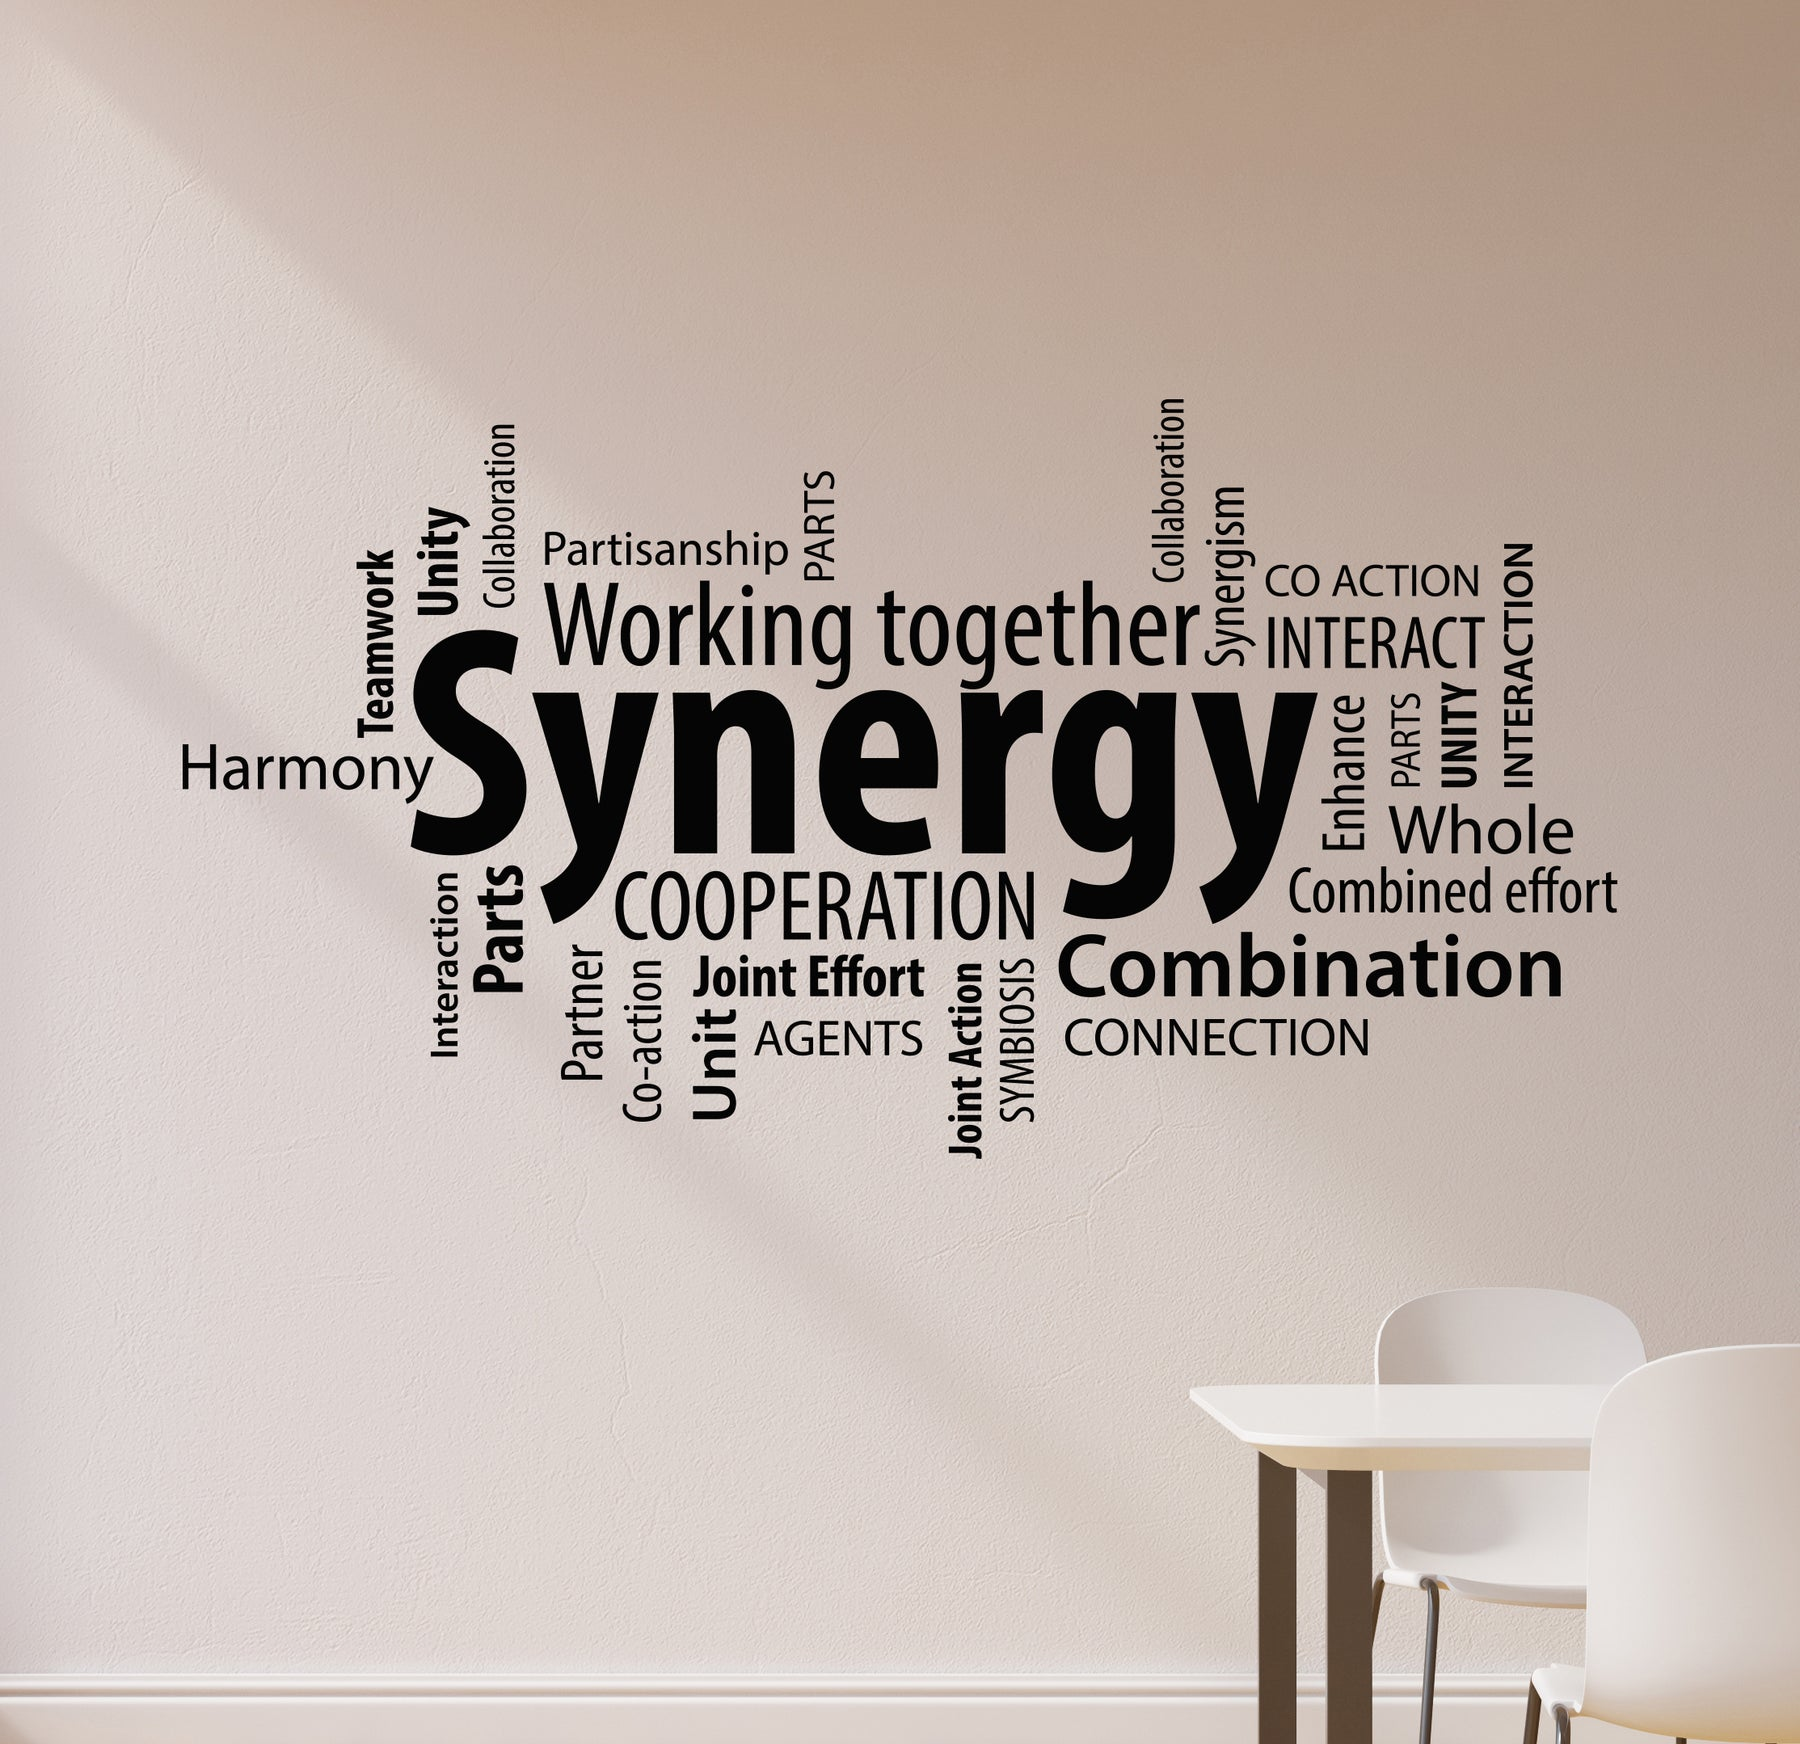 Vinyl Wall Decal Synergy Teamwork Team Work Office Words Cloud Stickers Mural (ig6224)